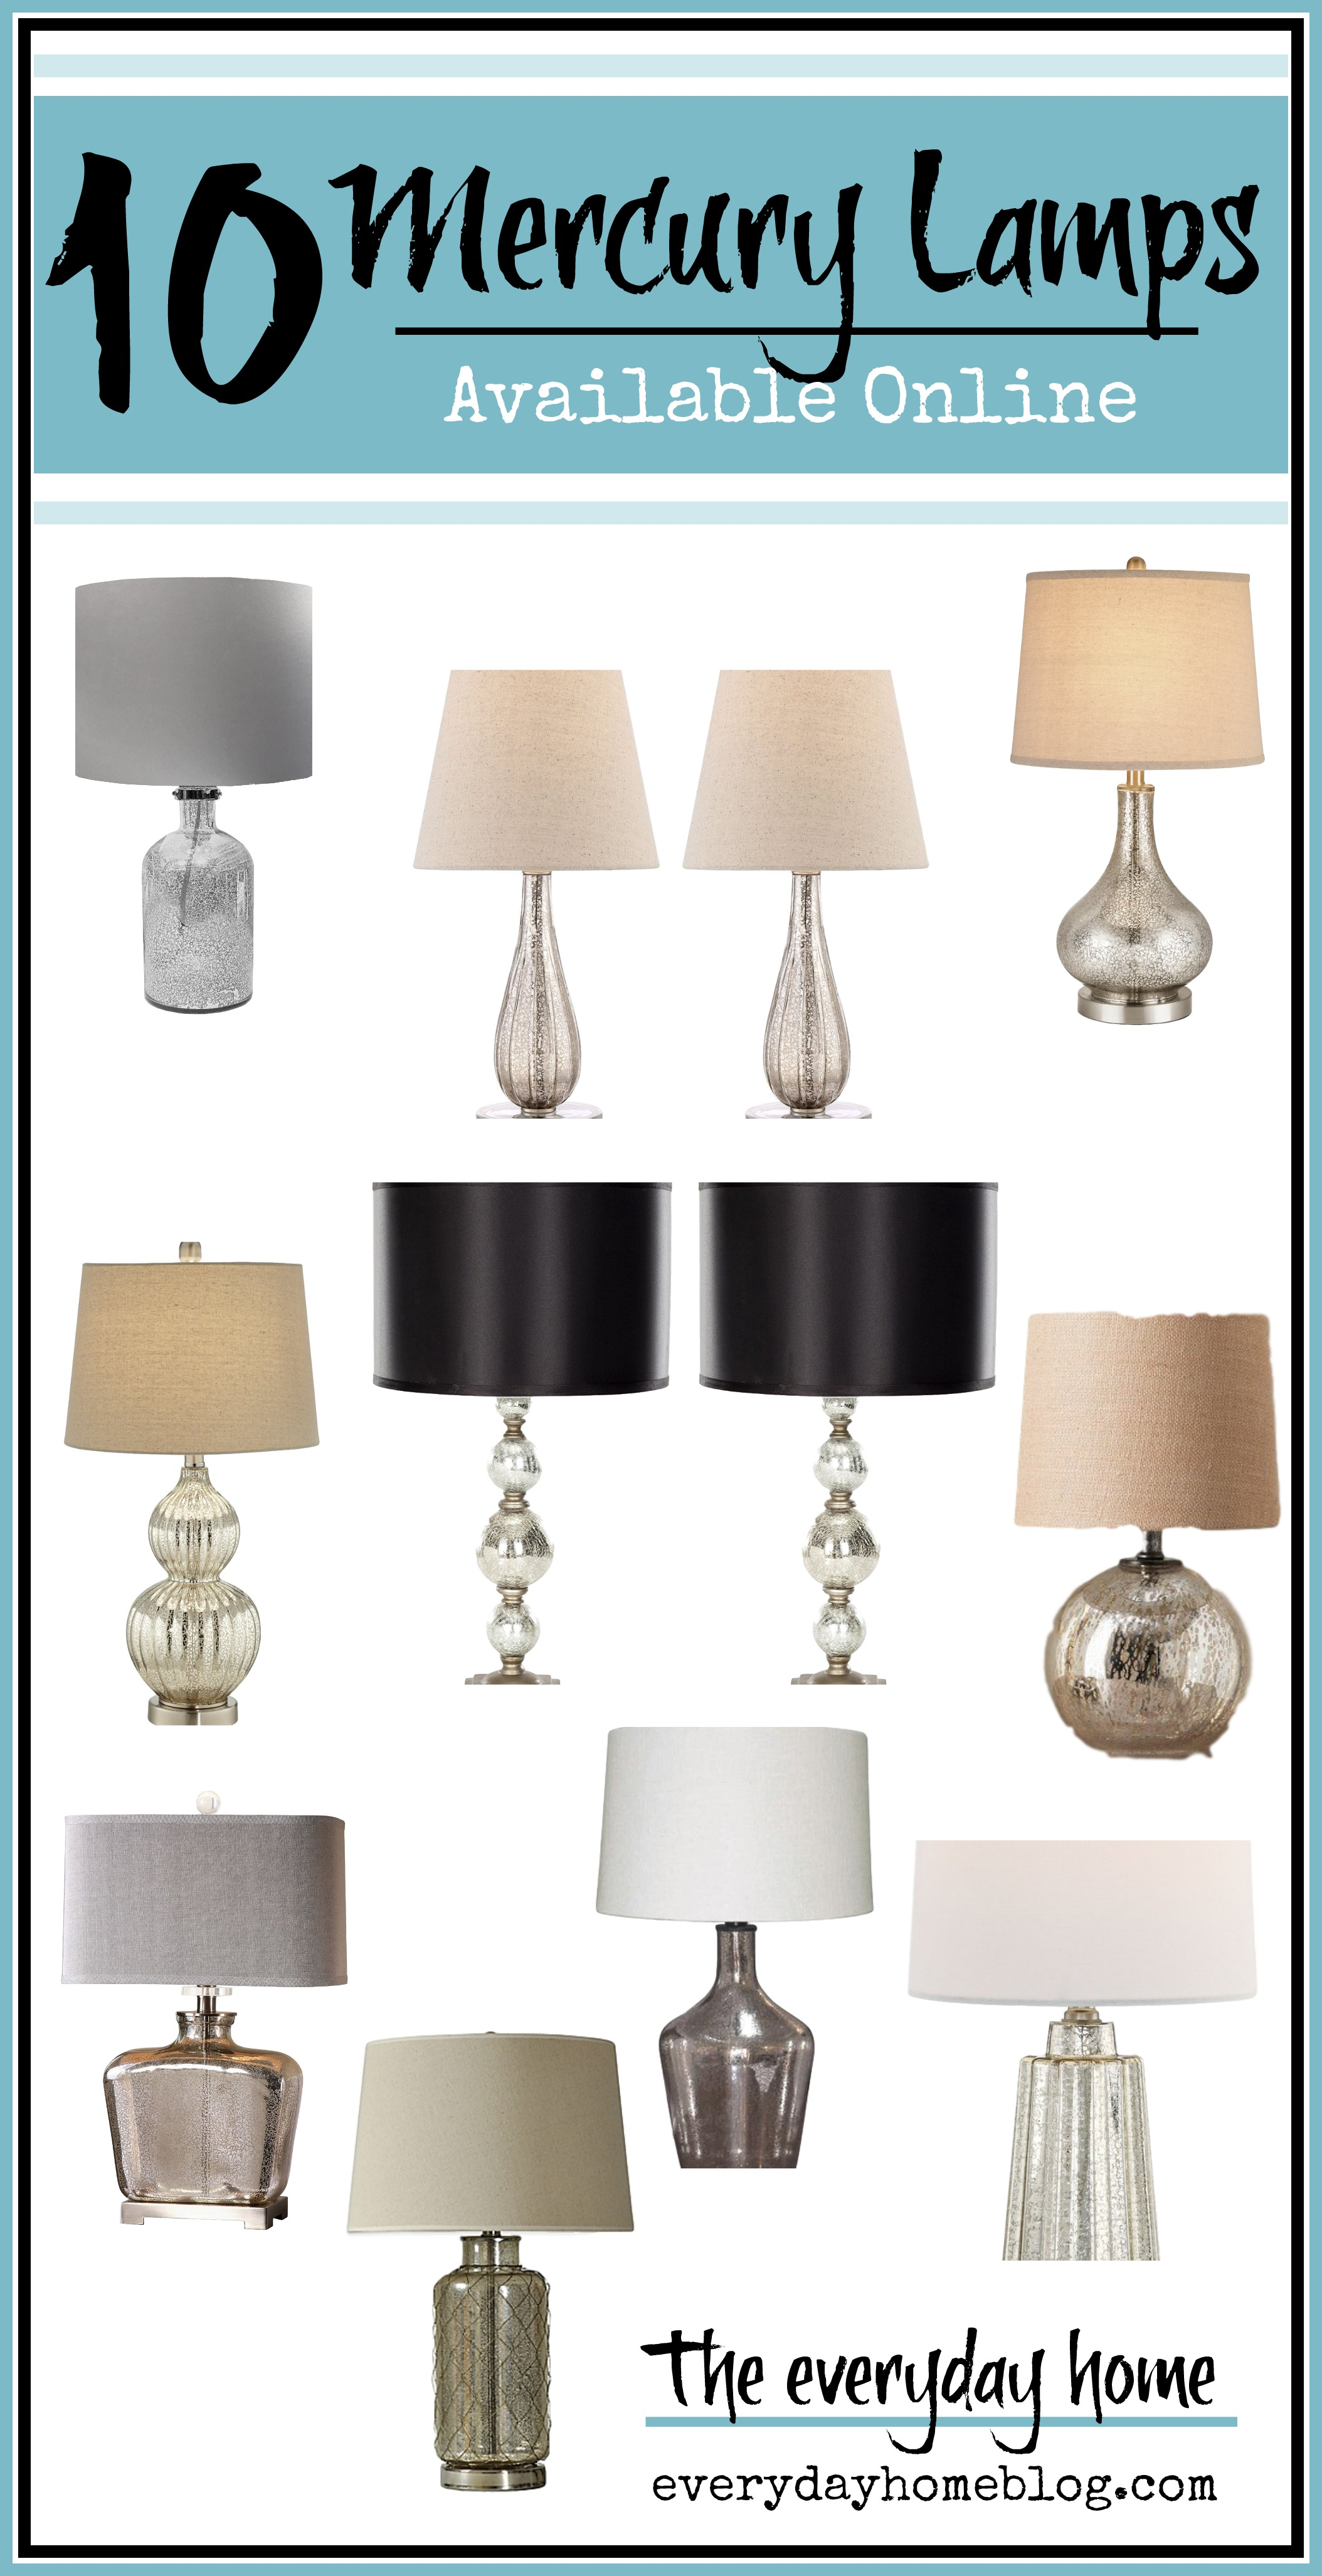 10 Amazing Mercury Lamps Available Online | Shopping Guide | The Everyday Home | www.everydayhomeblog.com